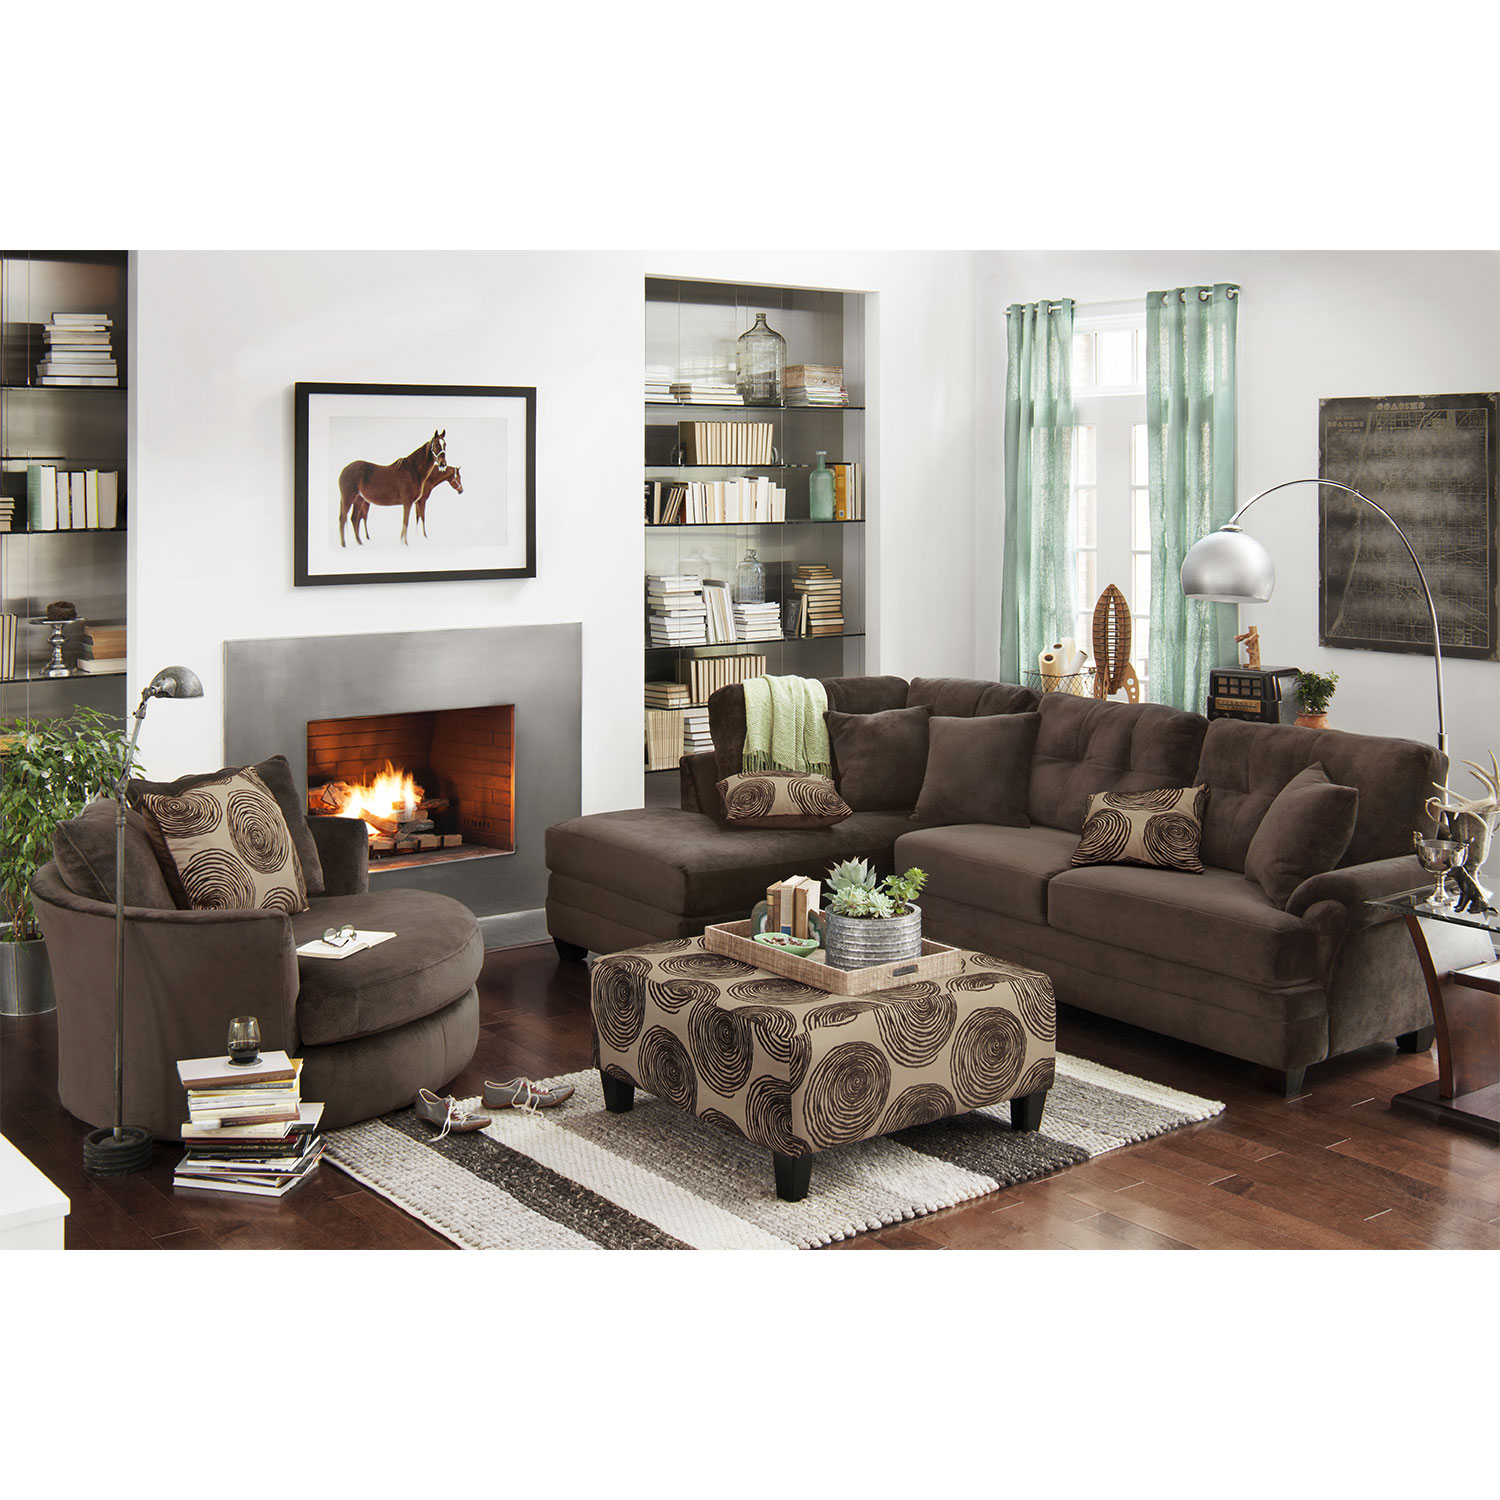 Living room furniture cordelle 2 piece sectional with chaise and swivel chair set hover touch to zoom click to change image